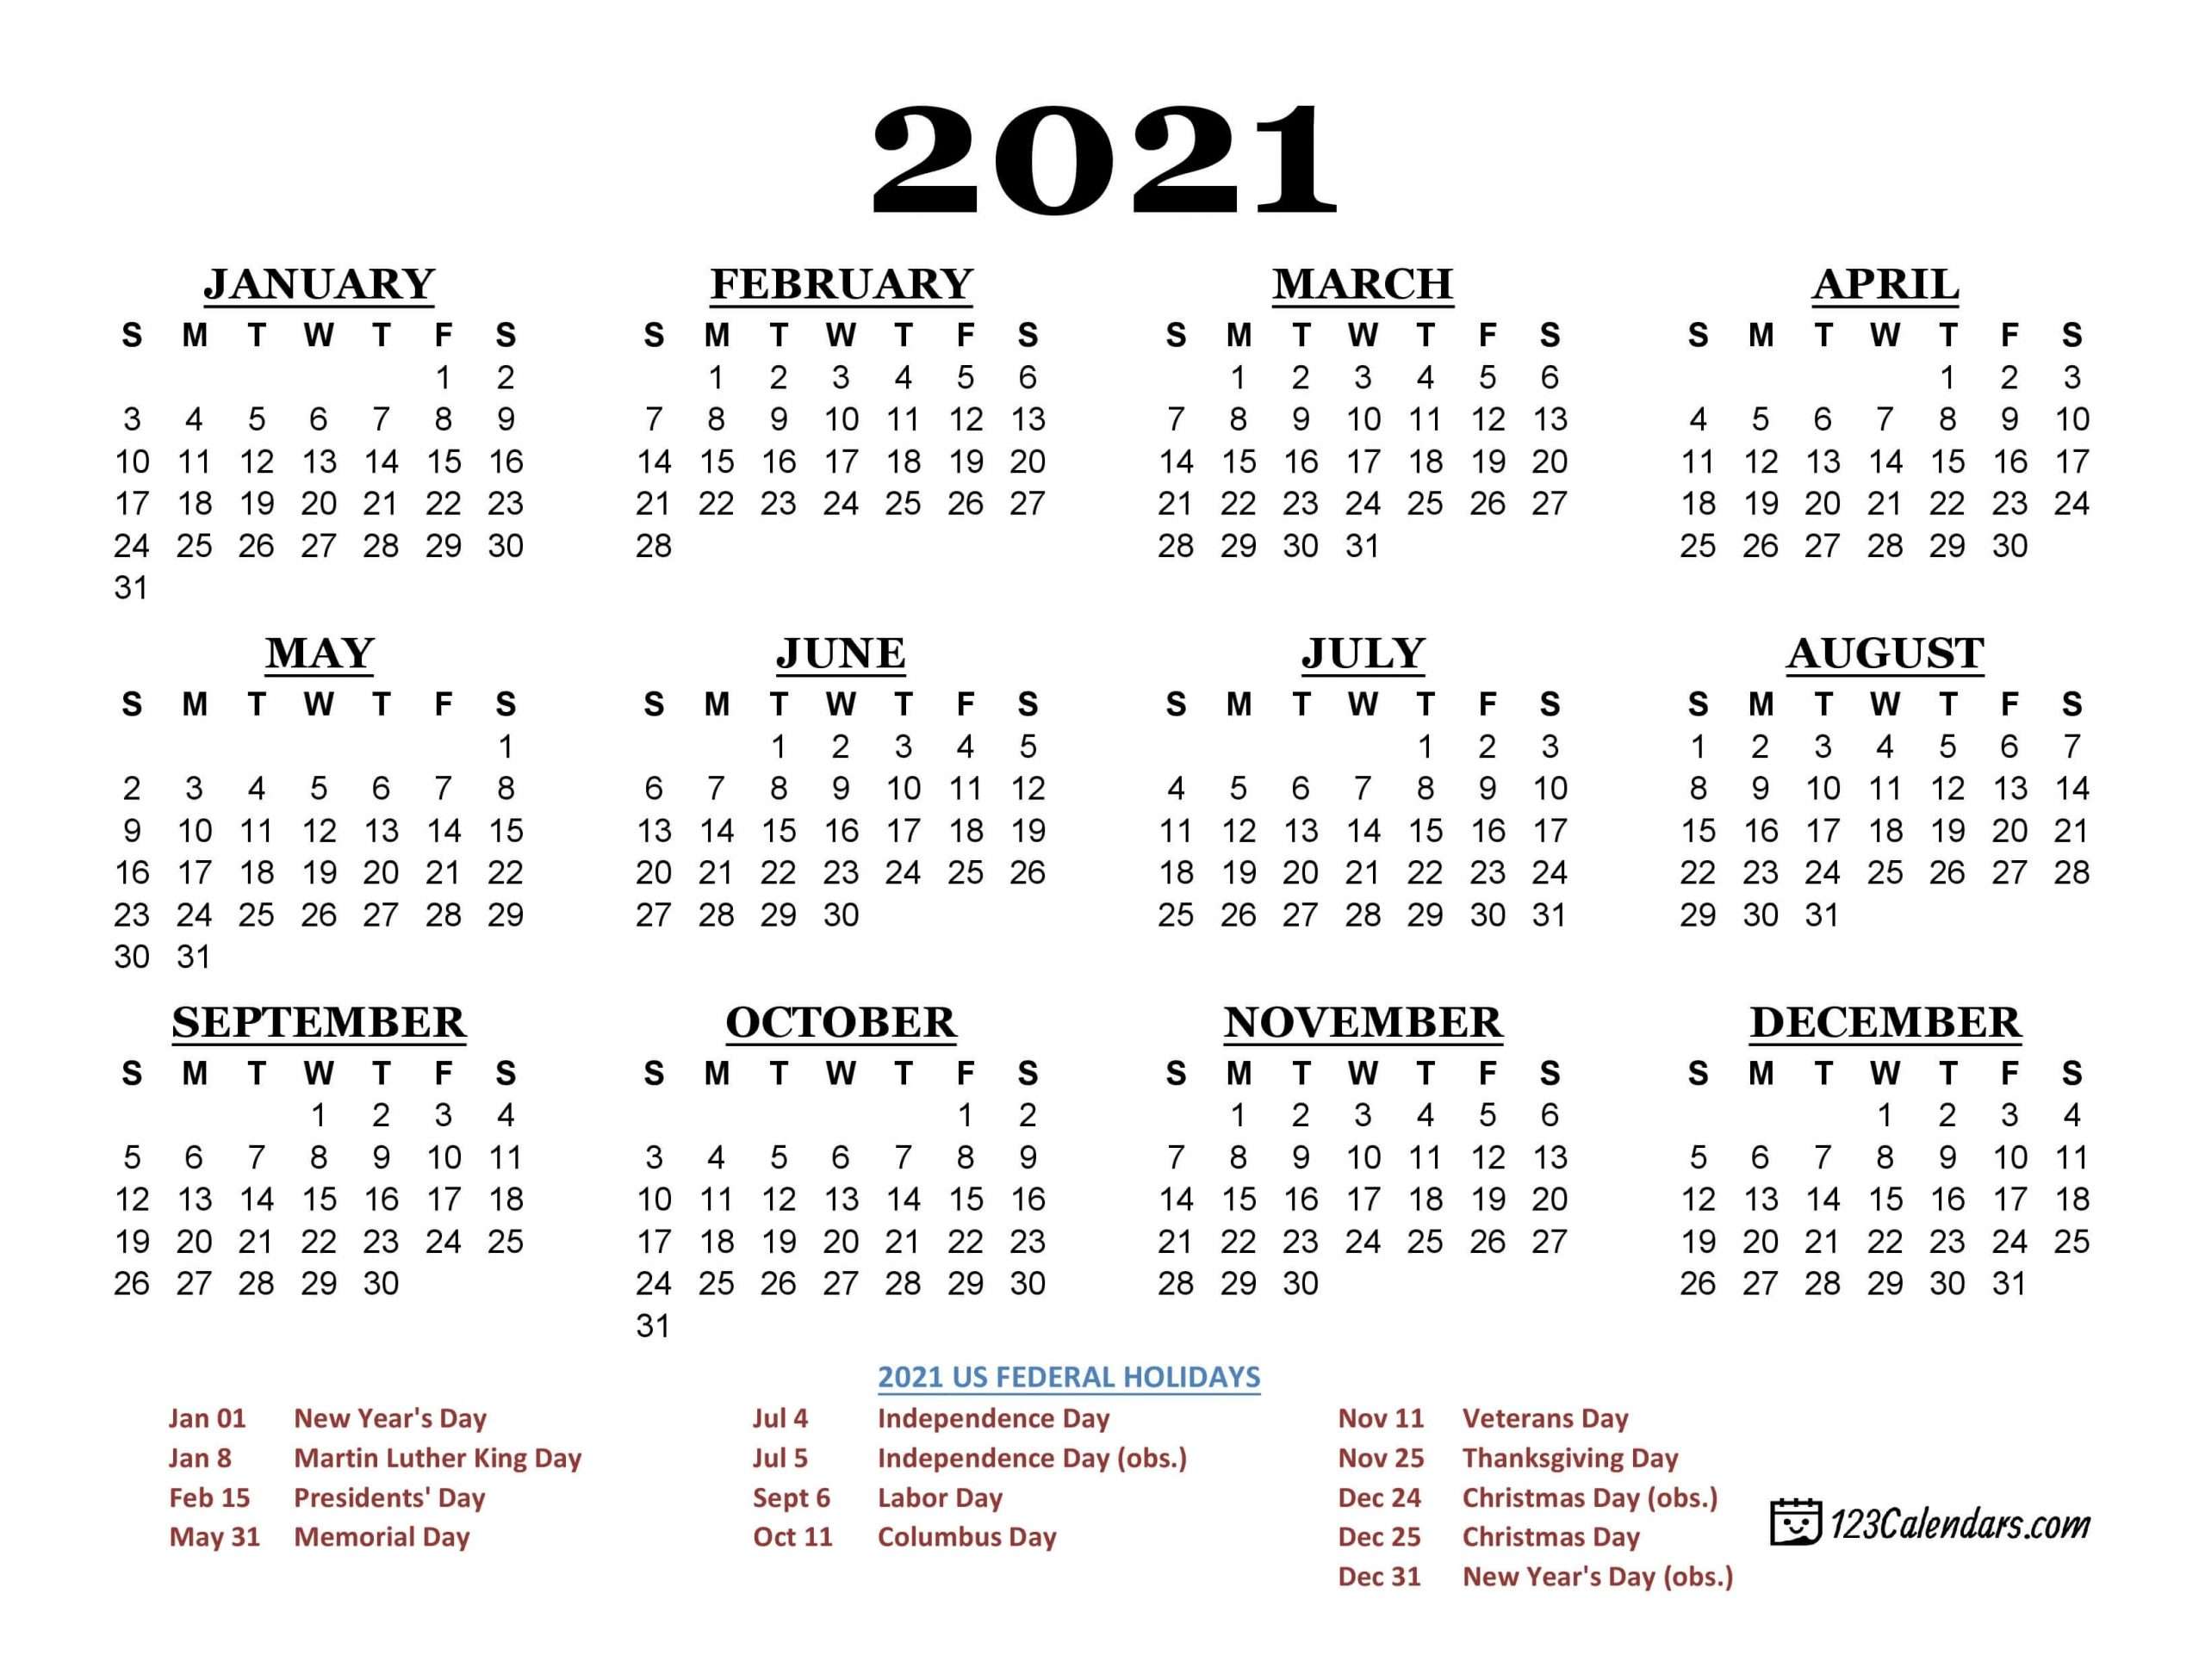 Pick What Are Special Days In 2021